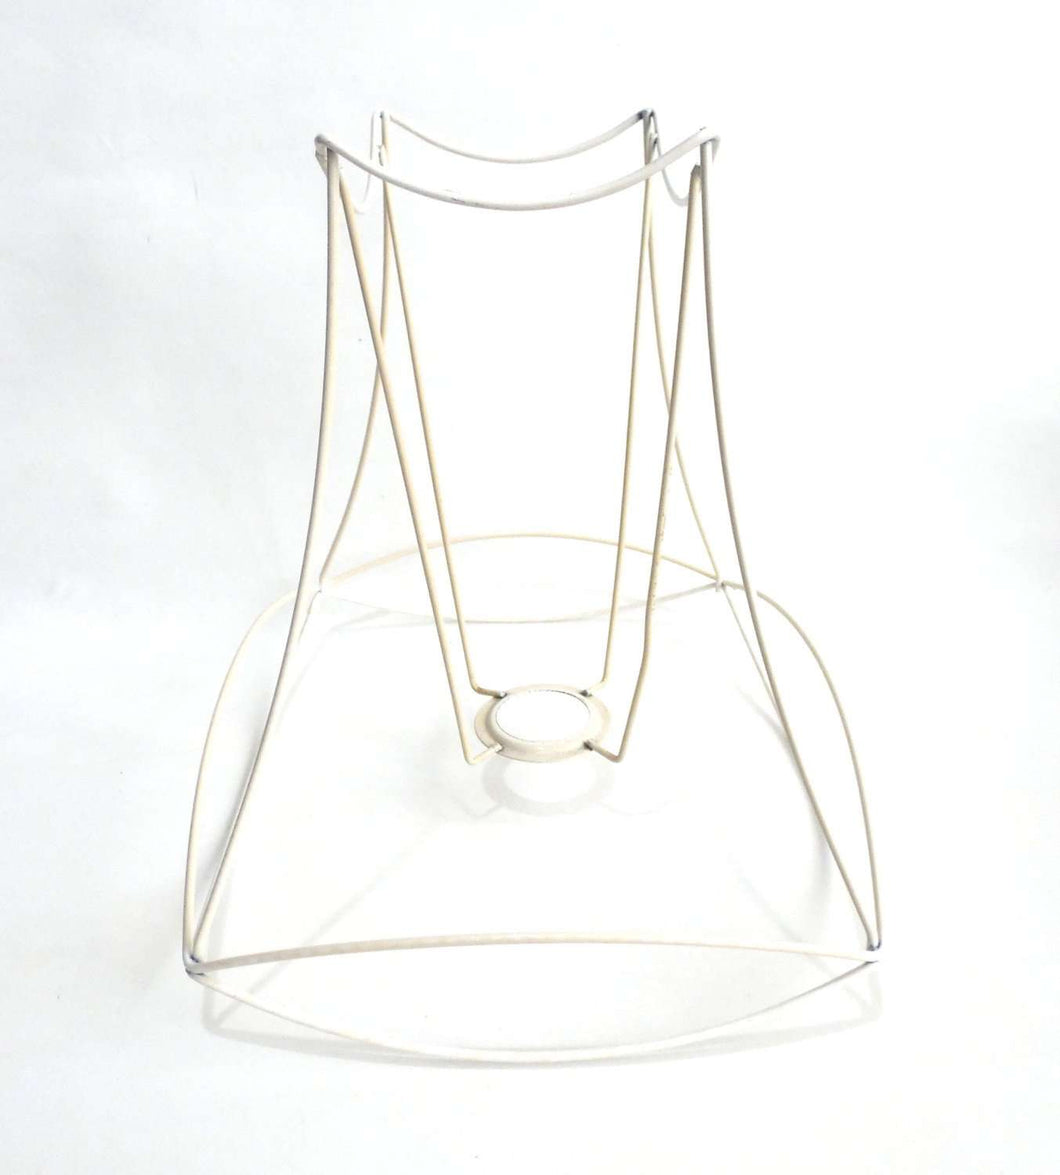 Lampshade frame wire frame authentic vintage lampshade wire frame upperdutchlampshade framelampshade frame wire frame authentic vintage lampshade wire frame greentooth Images